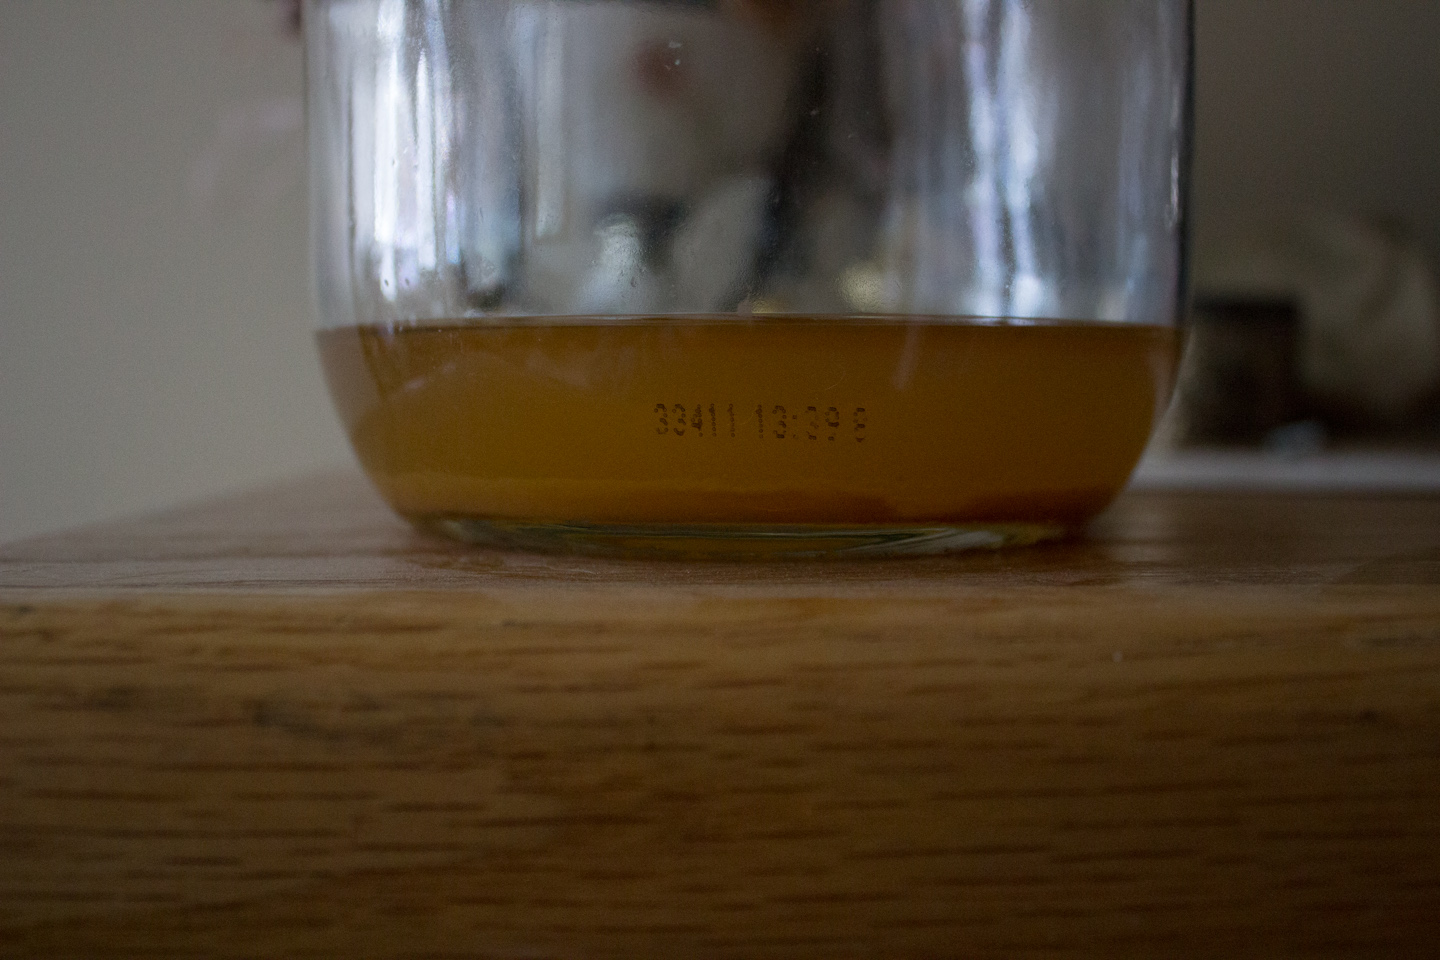 The sediment remaining after the cider settled out in a secondary fermentation vessel.